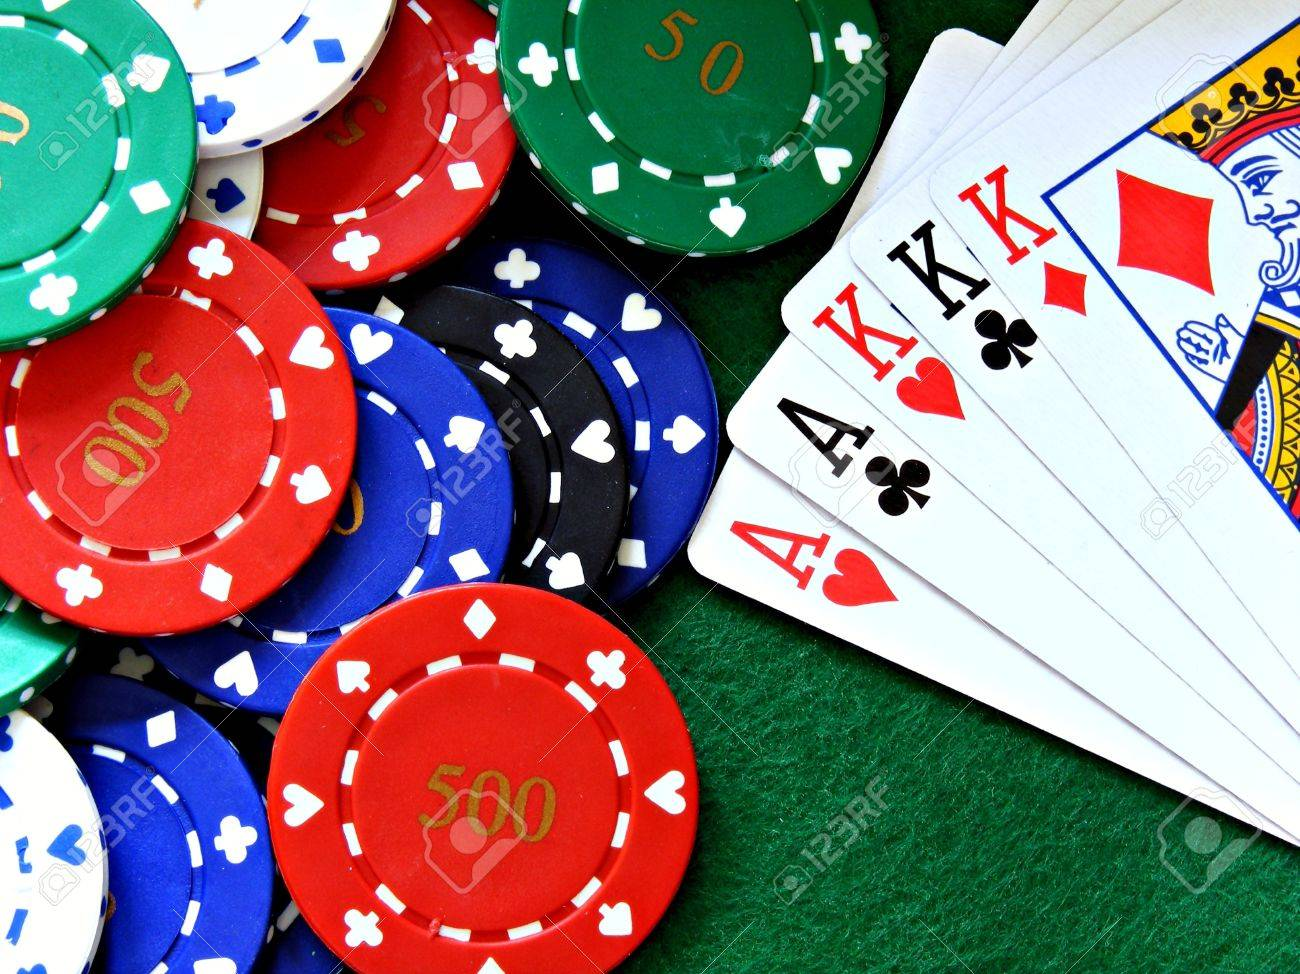 Poker table background - A Full House Poker Hand With Poker Chips On A Green Felt Poker Table Background Stock